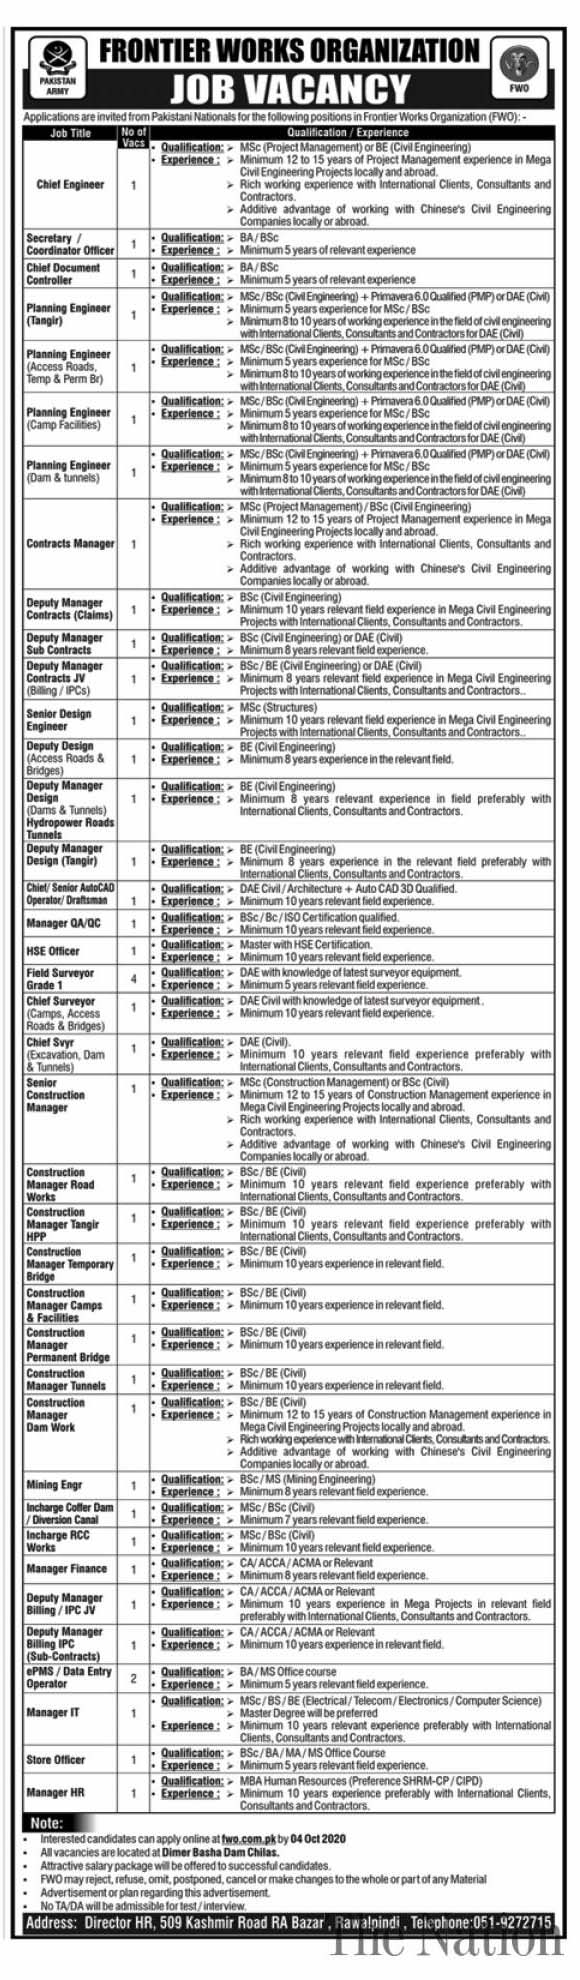 Frontier Works Organization (FWO) Jobs 2020 For Planning Engineers And Other Posts